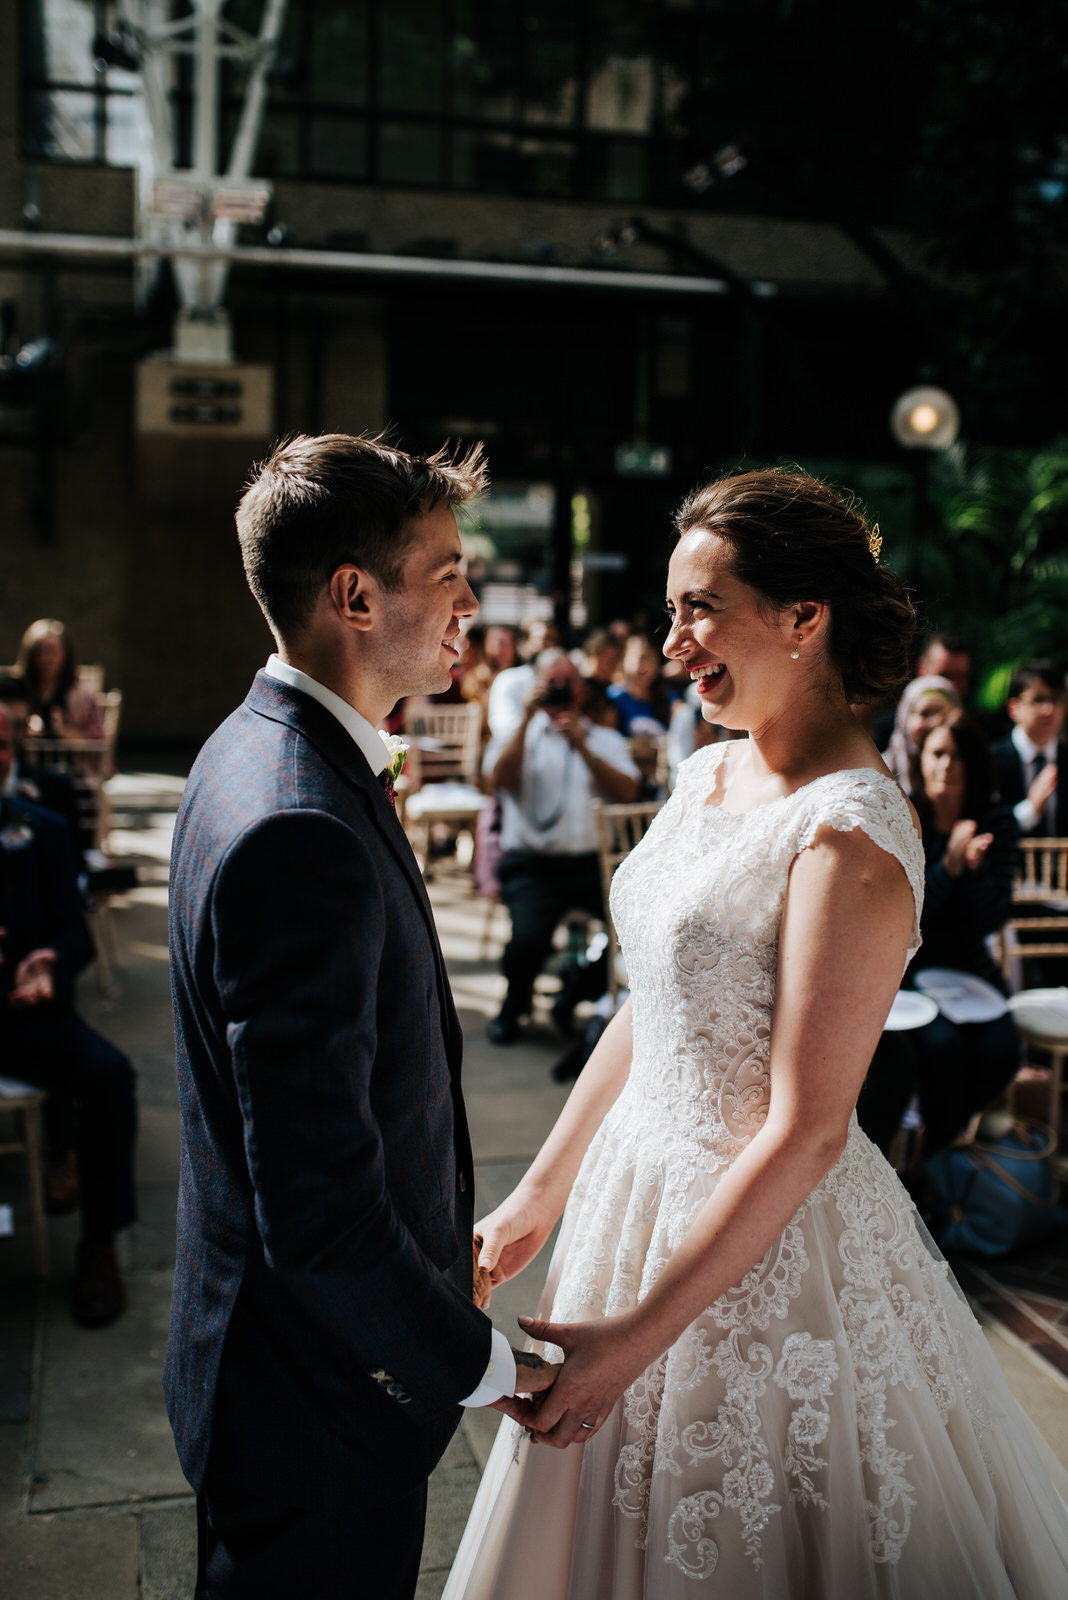 Bride and groom hold hands and smile at each other seconds after